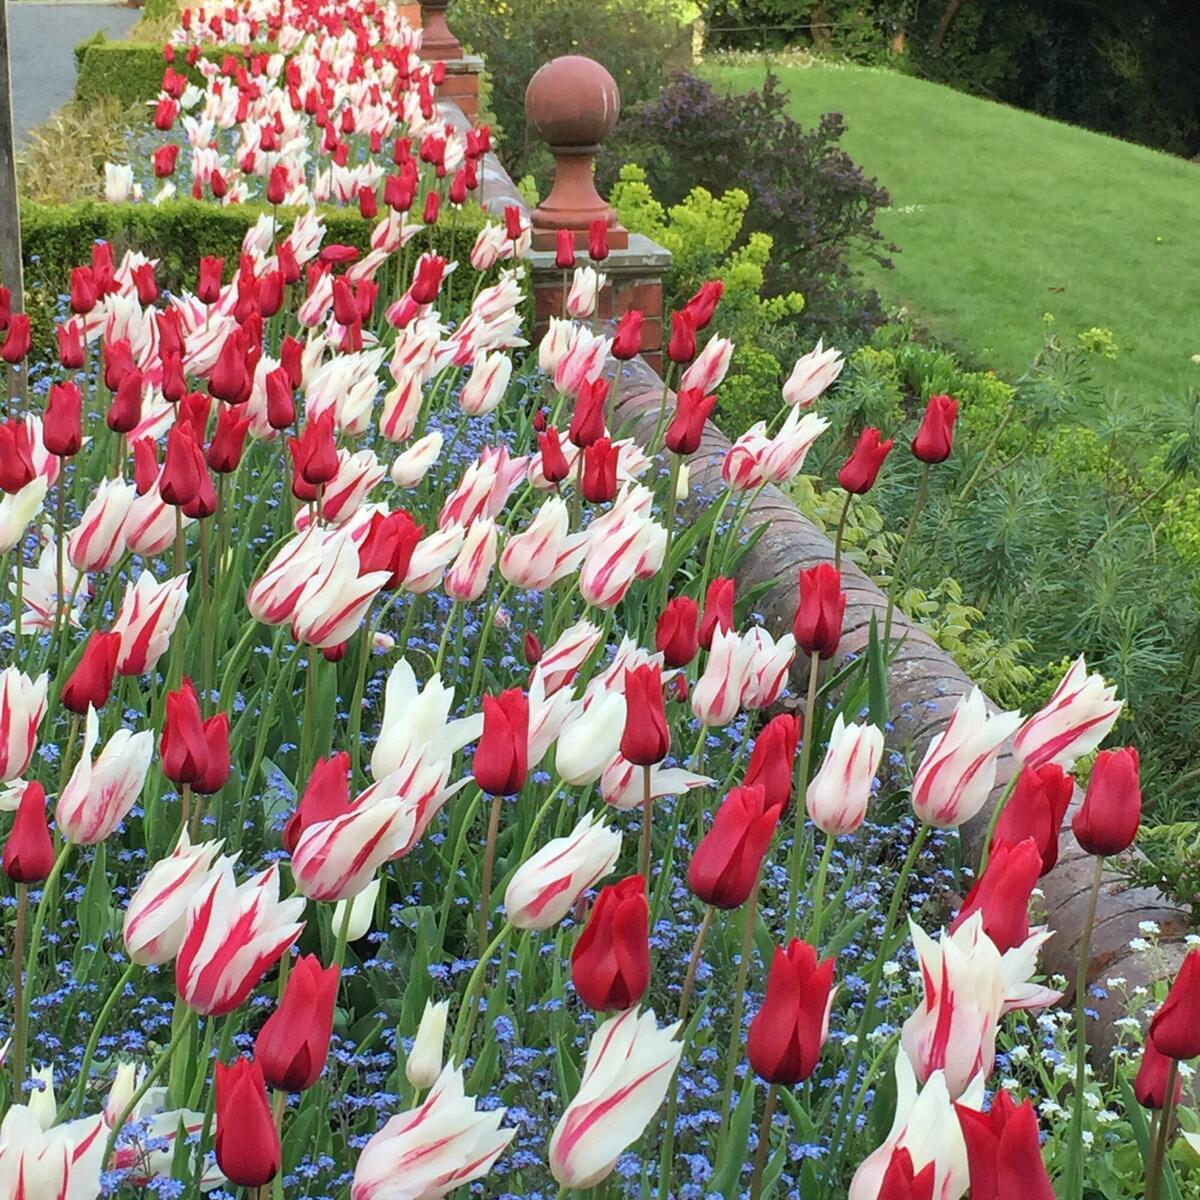 The terrace resplendent with tulips